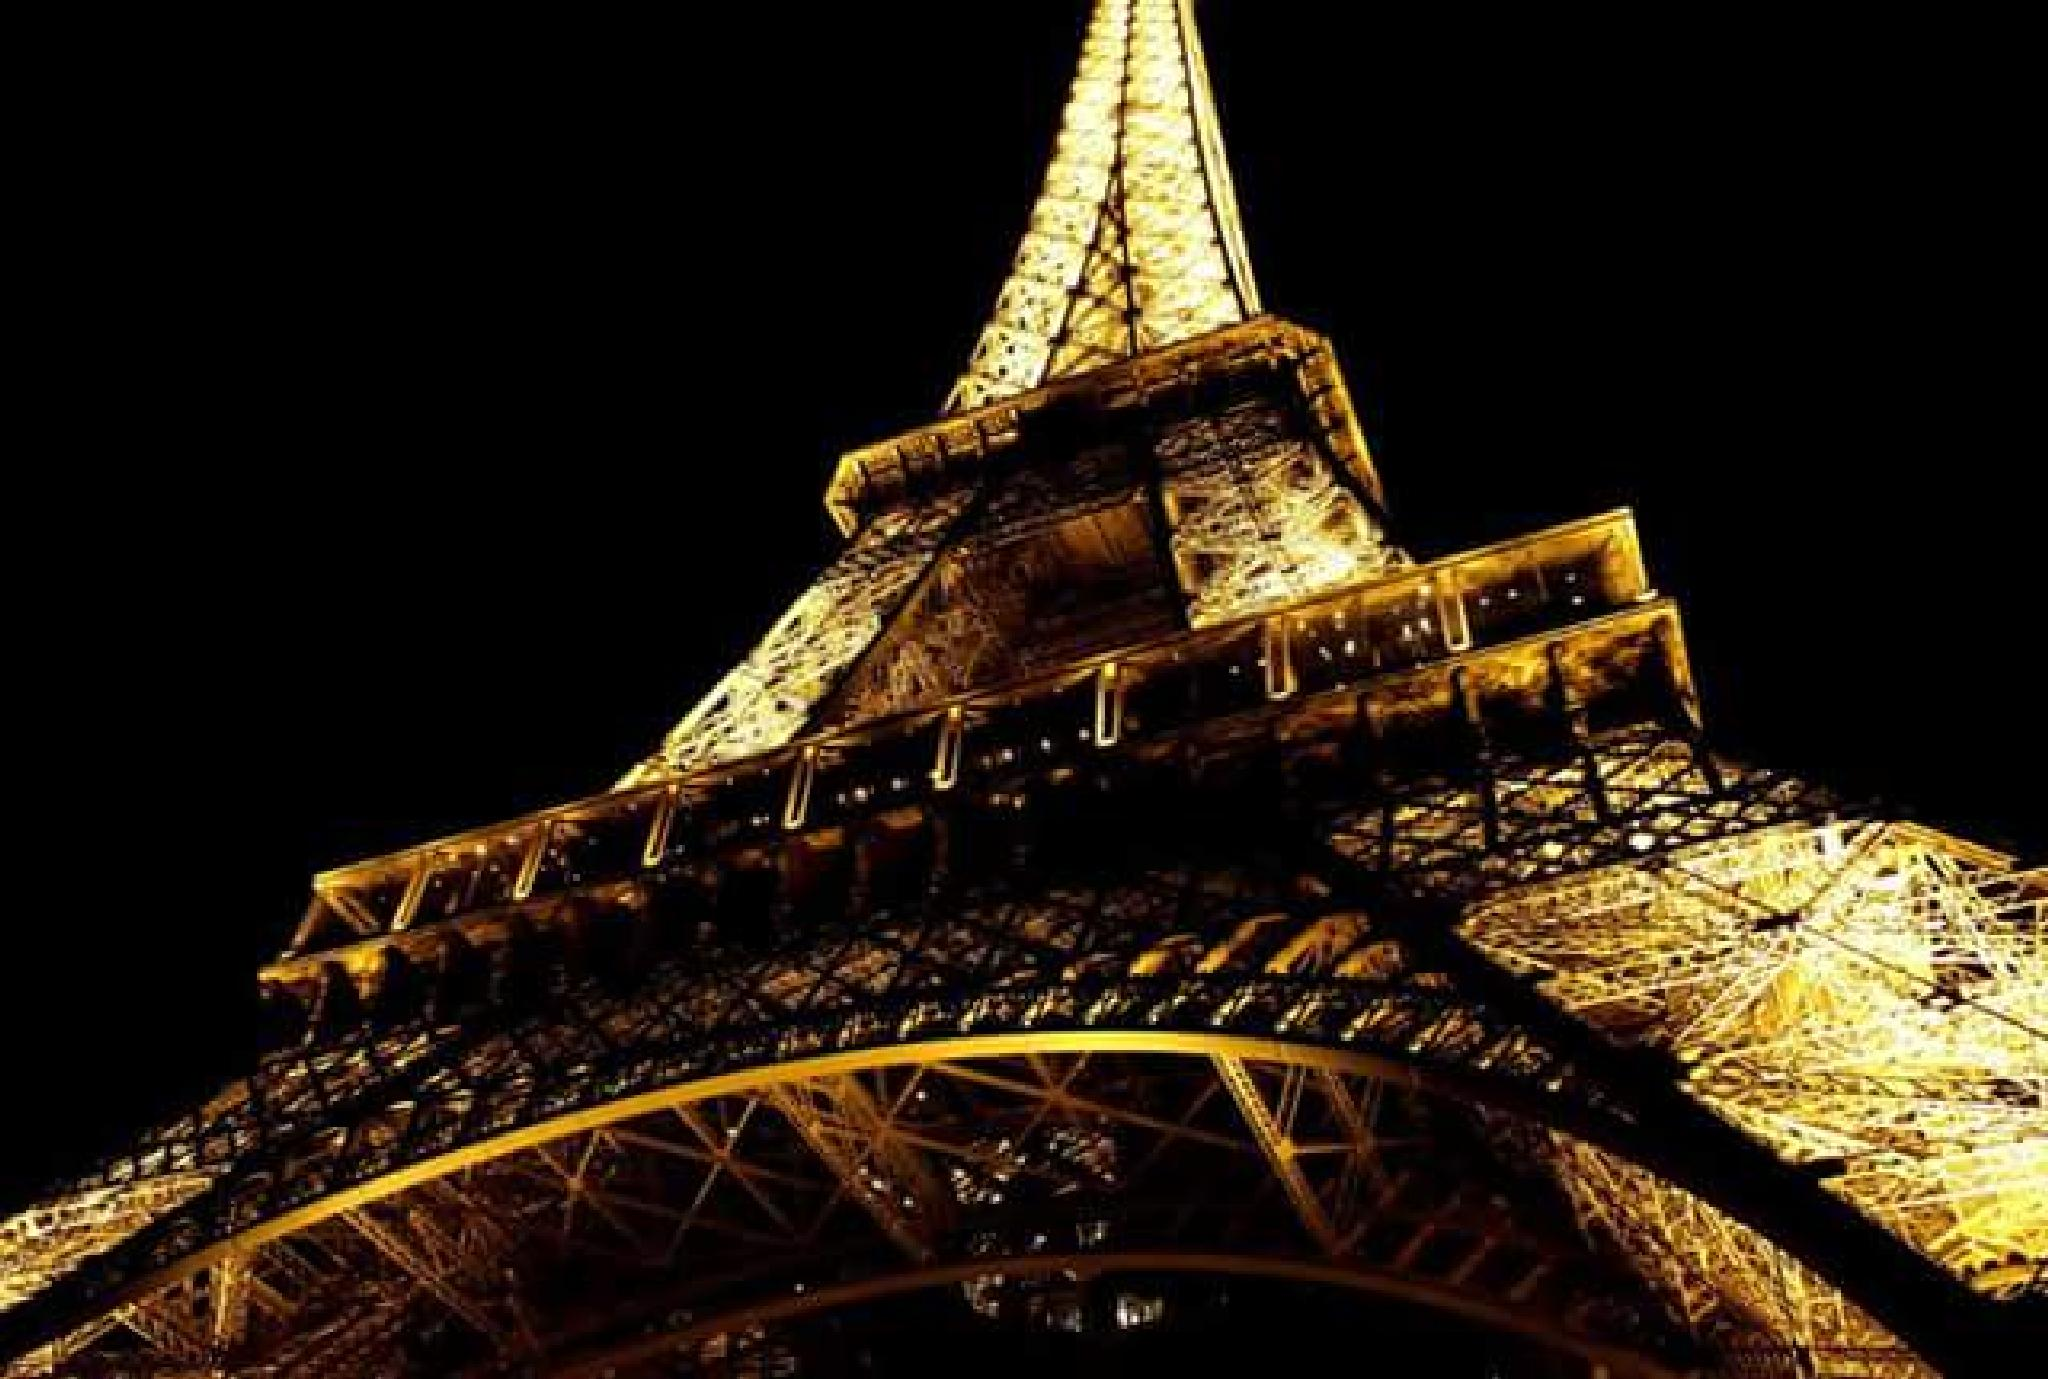 the Eiffel Tower by night by lorenzo.lourencothierry